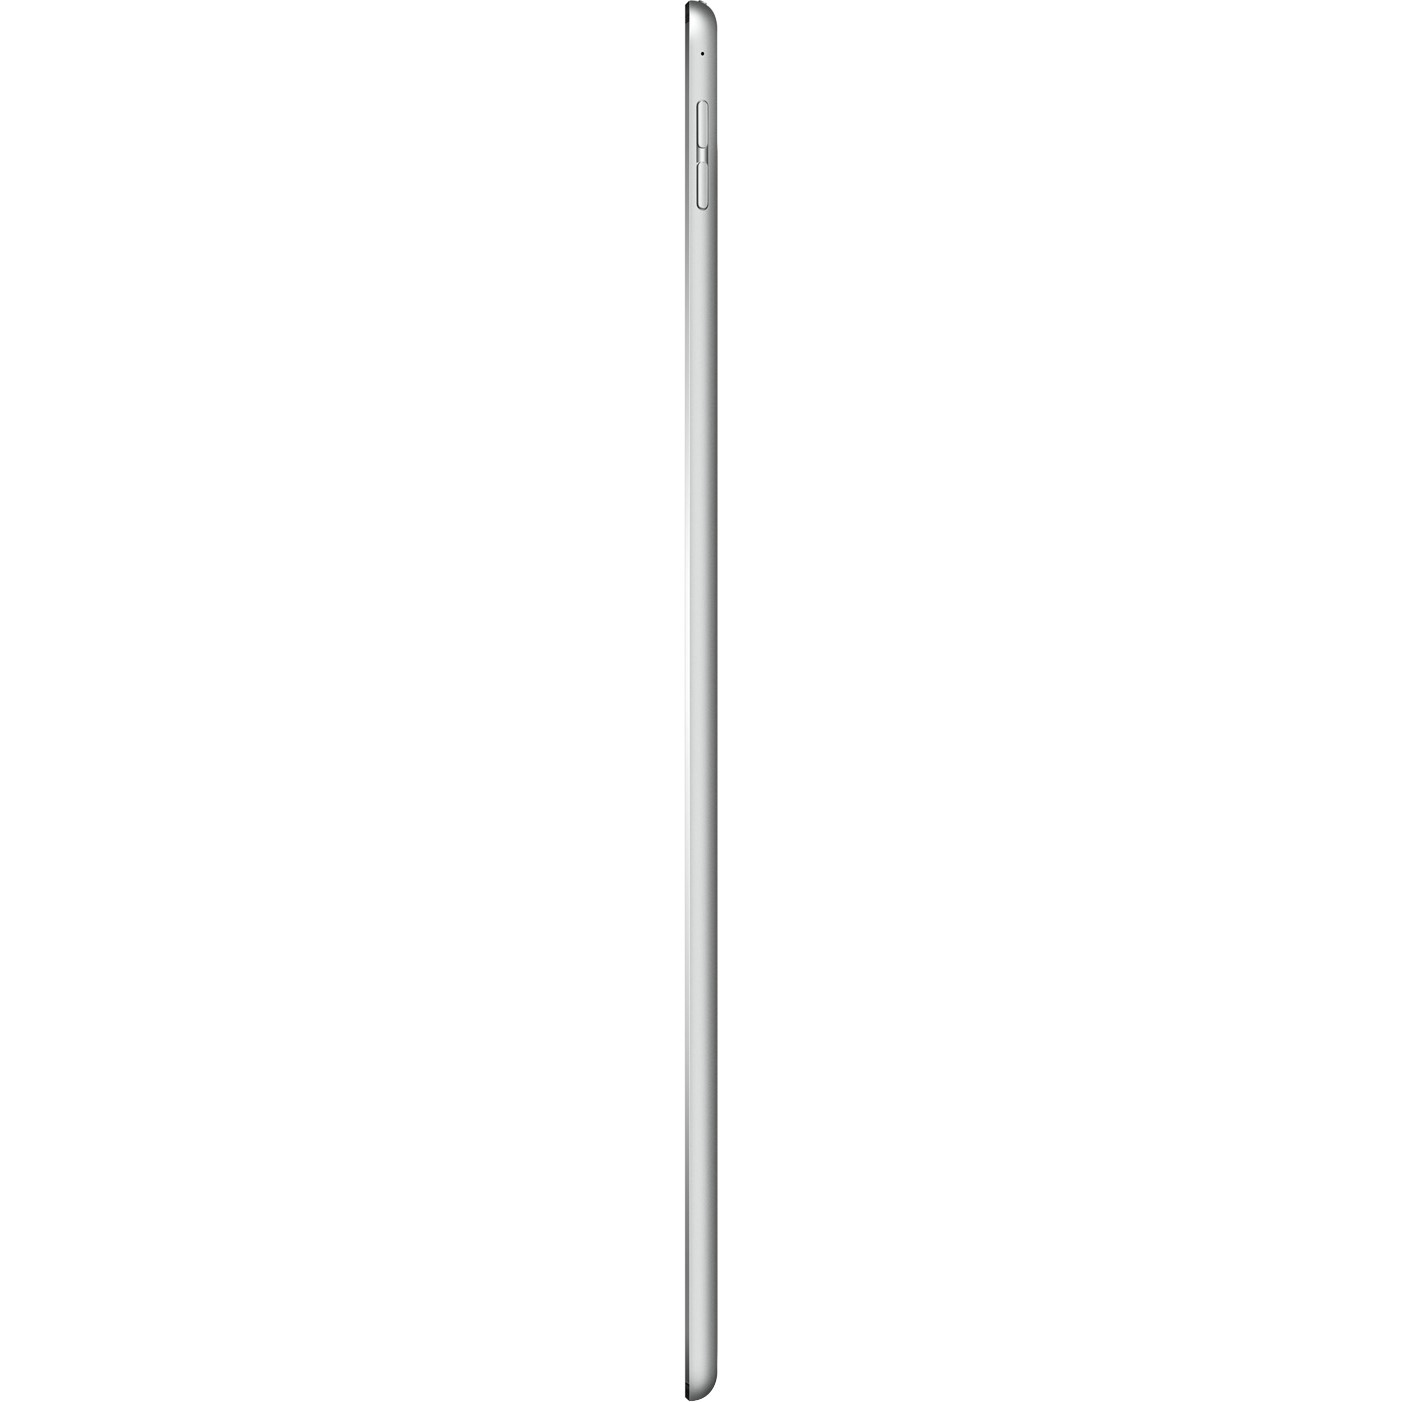 Apple iPad Pro Tablet - 32.8 cm 12.9inch - Apple A9X - 128 GB - iOS 9 - Retina Display - 4G - CDMA2000, GSM Supported - Silver - 4:3 Aspect Ratio - Wireless LAN - Blu